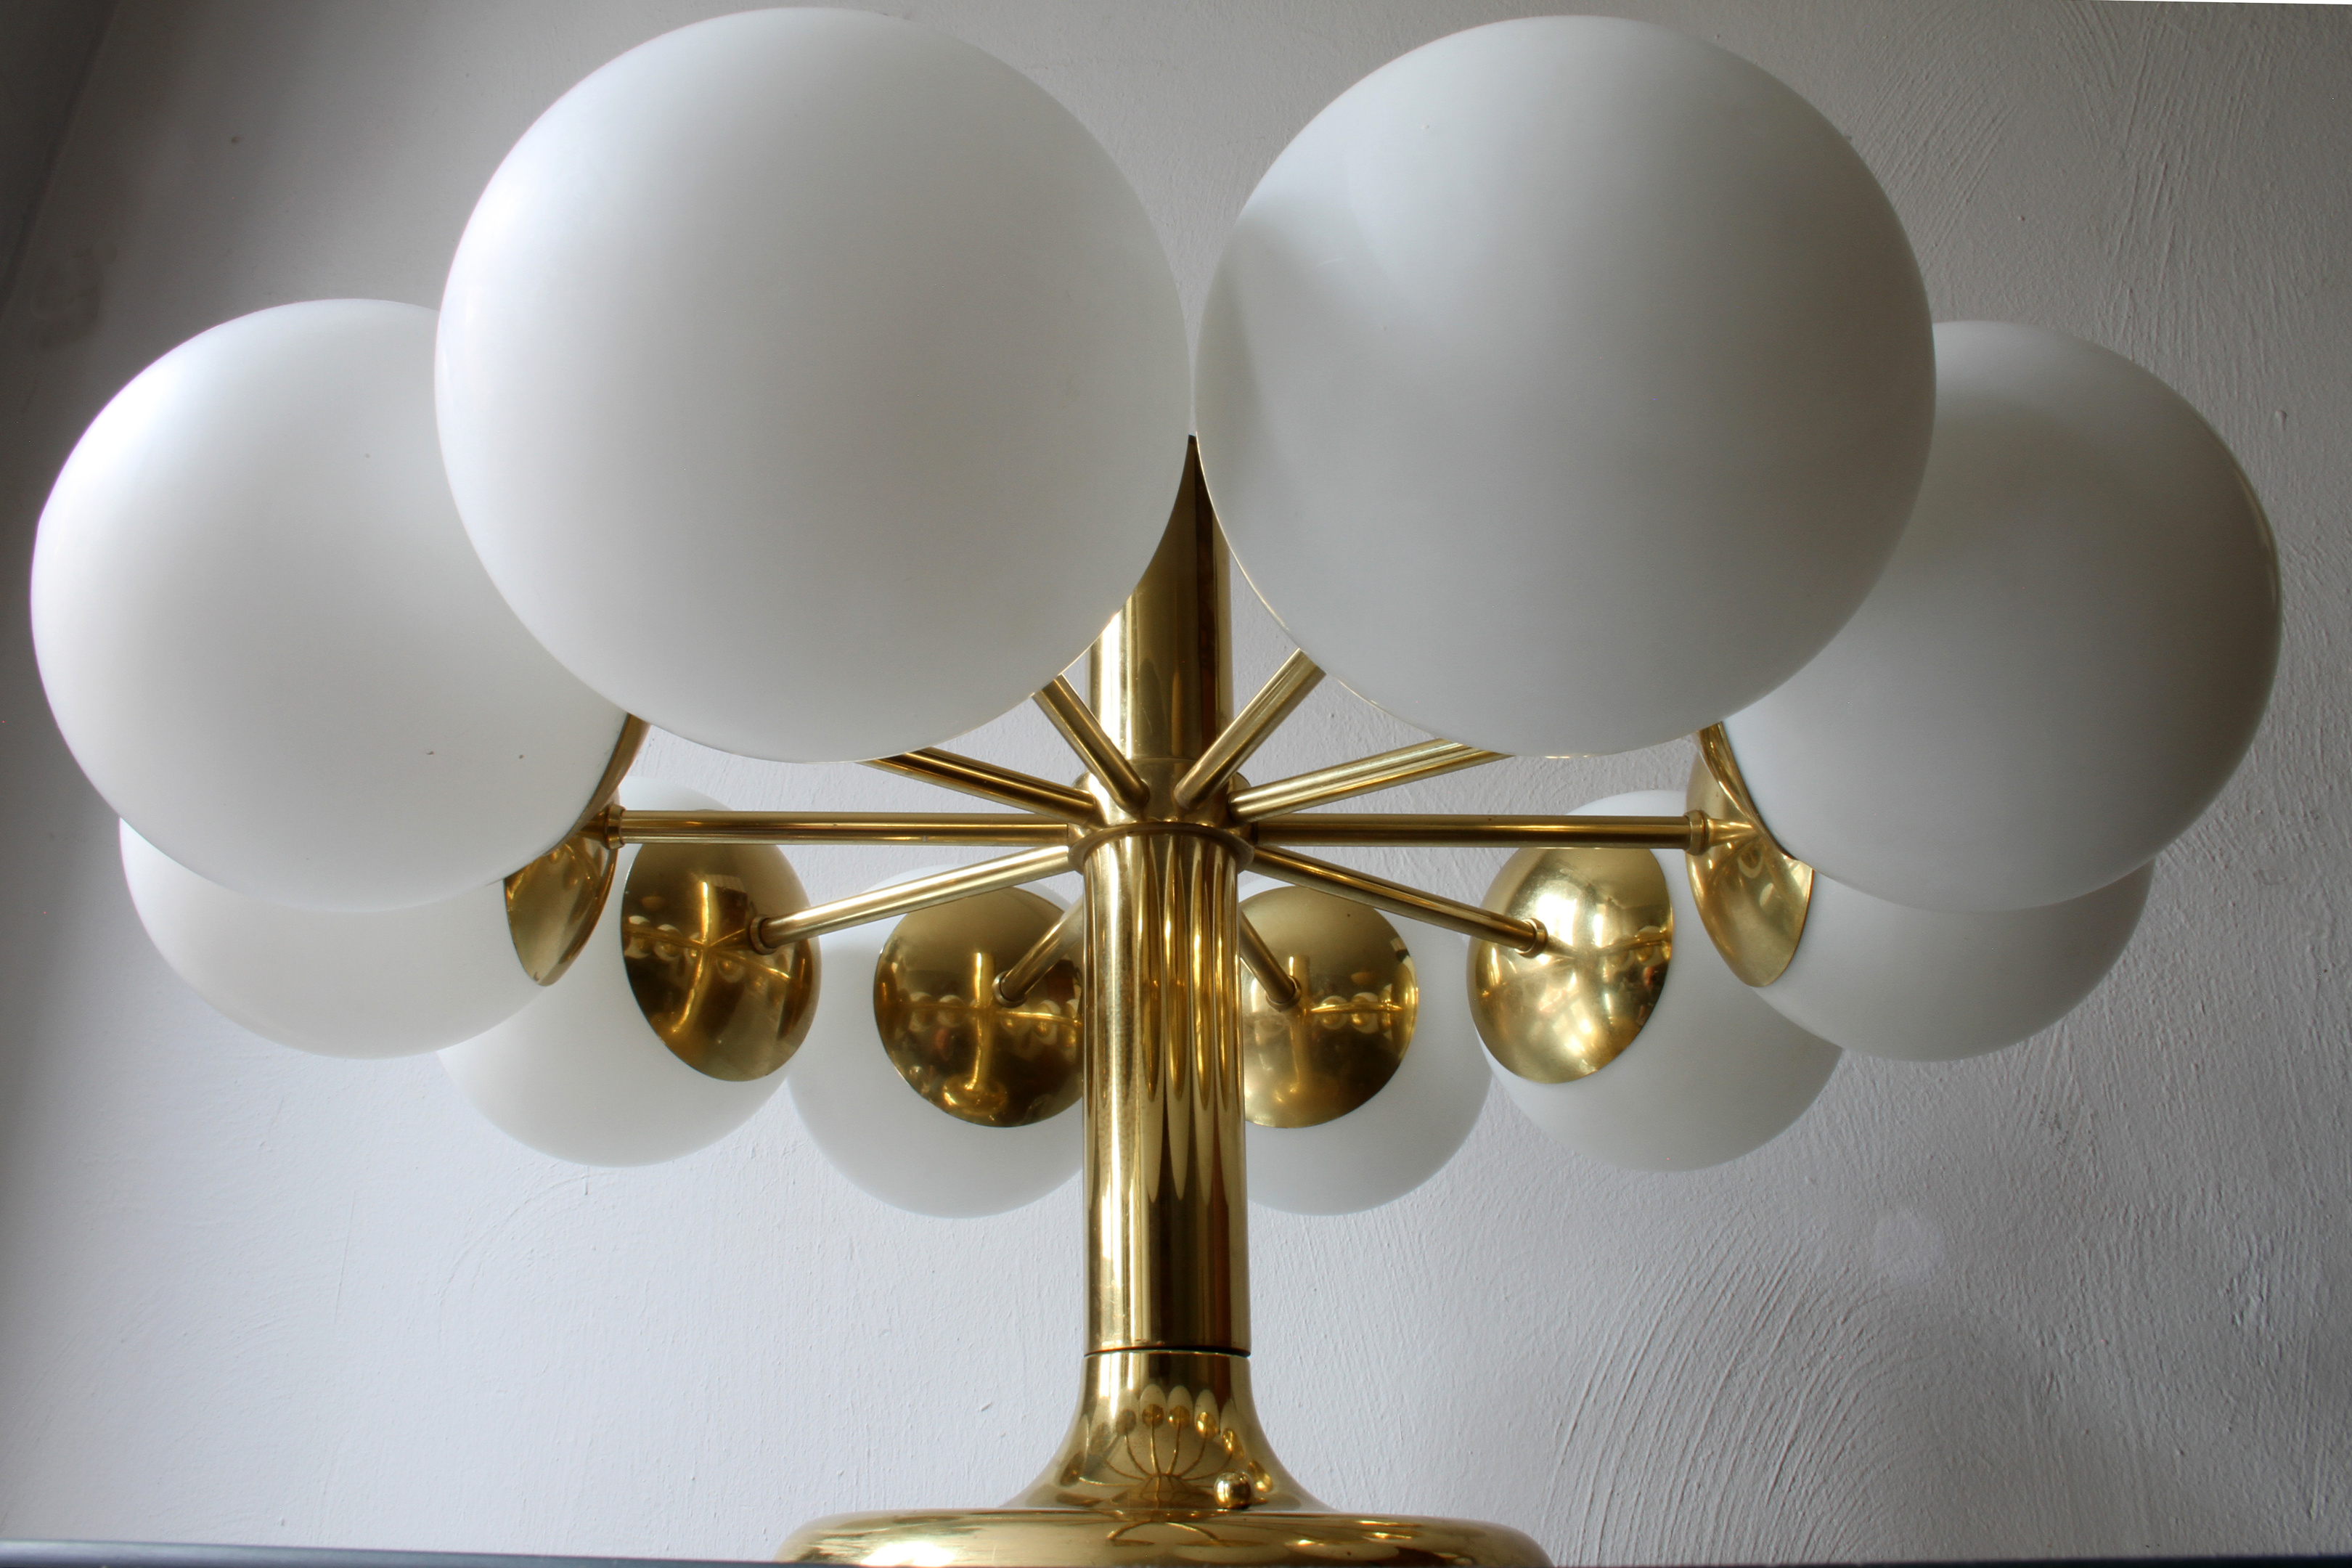 Leuchten Kaiser Kaiser Leuchten Radial Sputnik Opal Glass Globes Chandelier, Germany, 1960s | Collectors Weekly